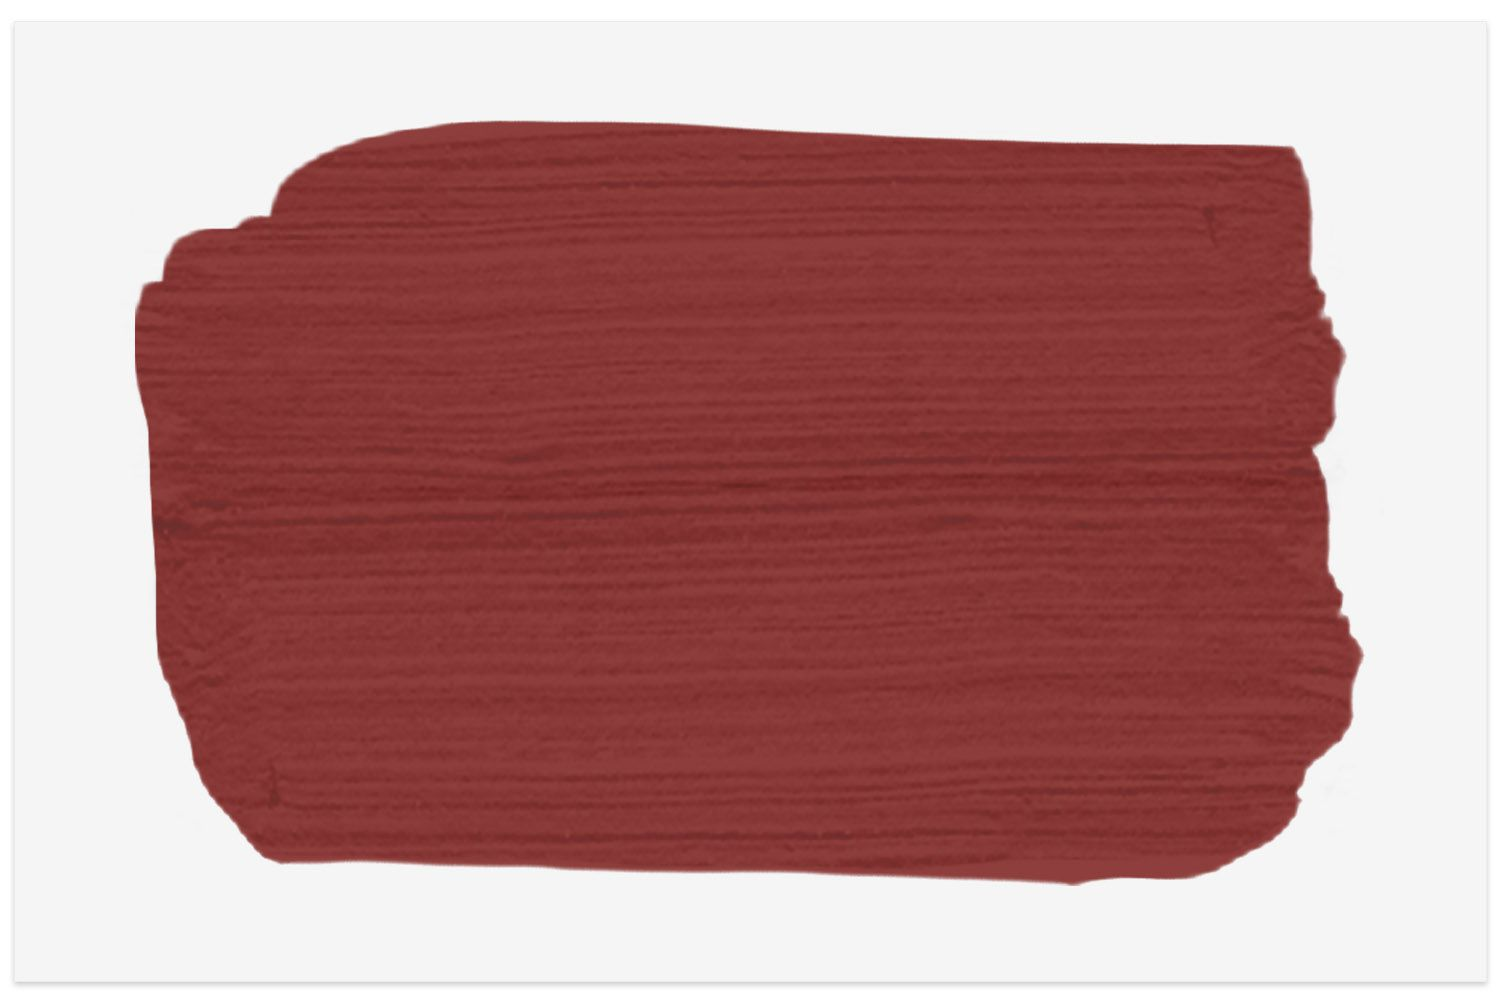 Carriage Red paint swatch from Behr